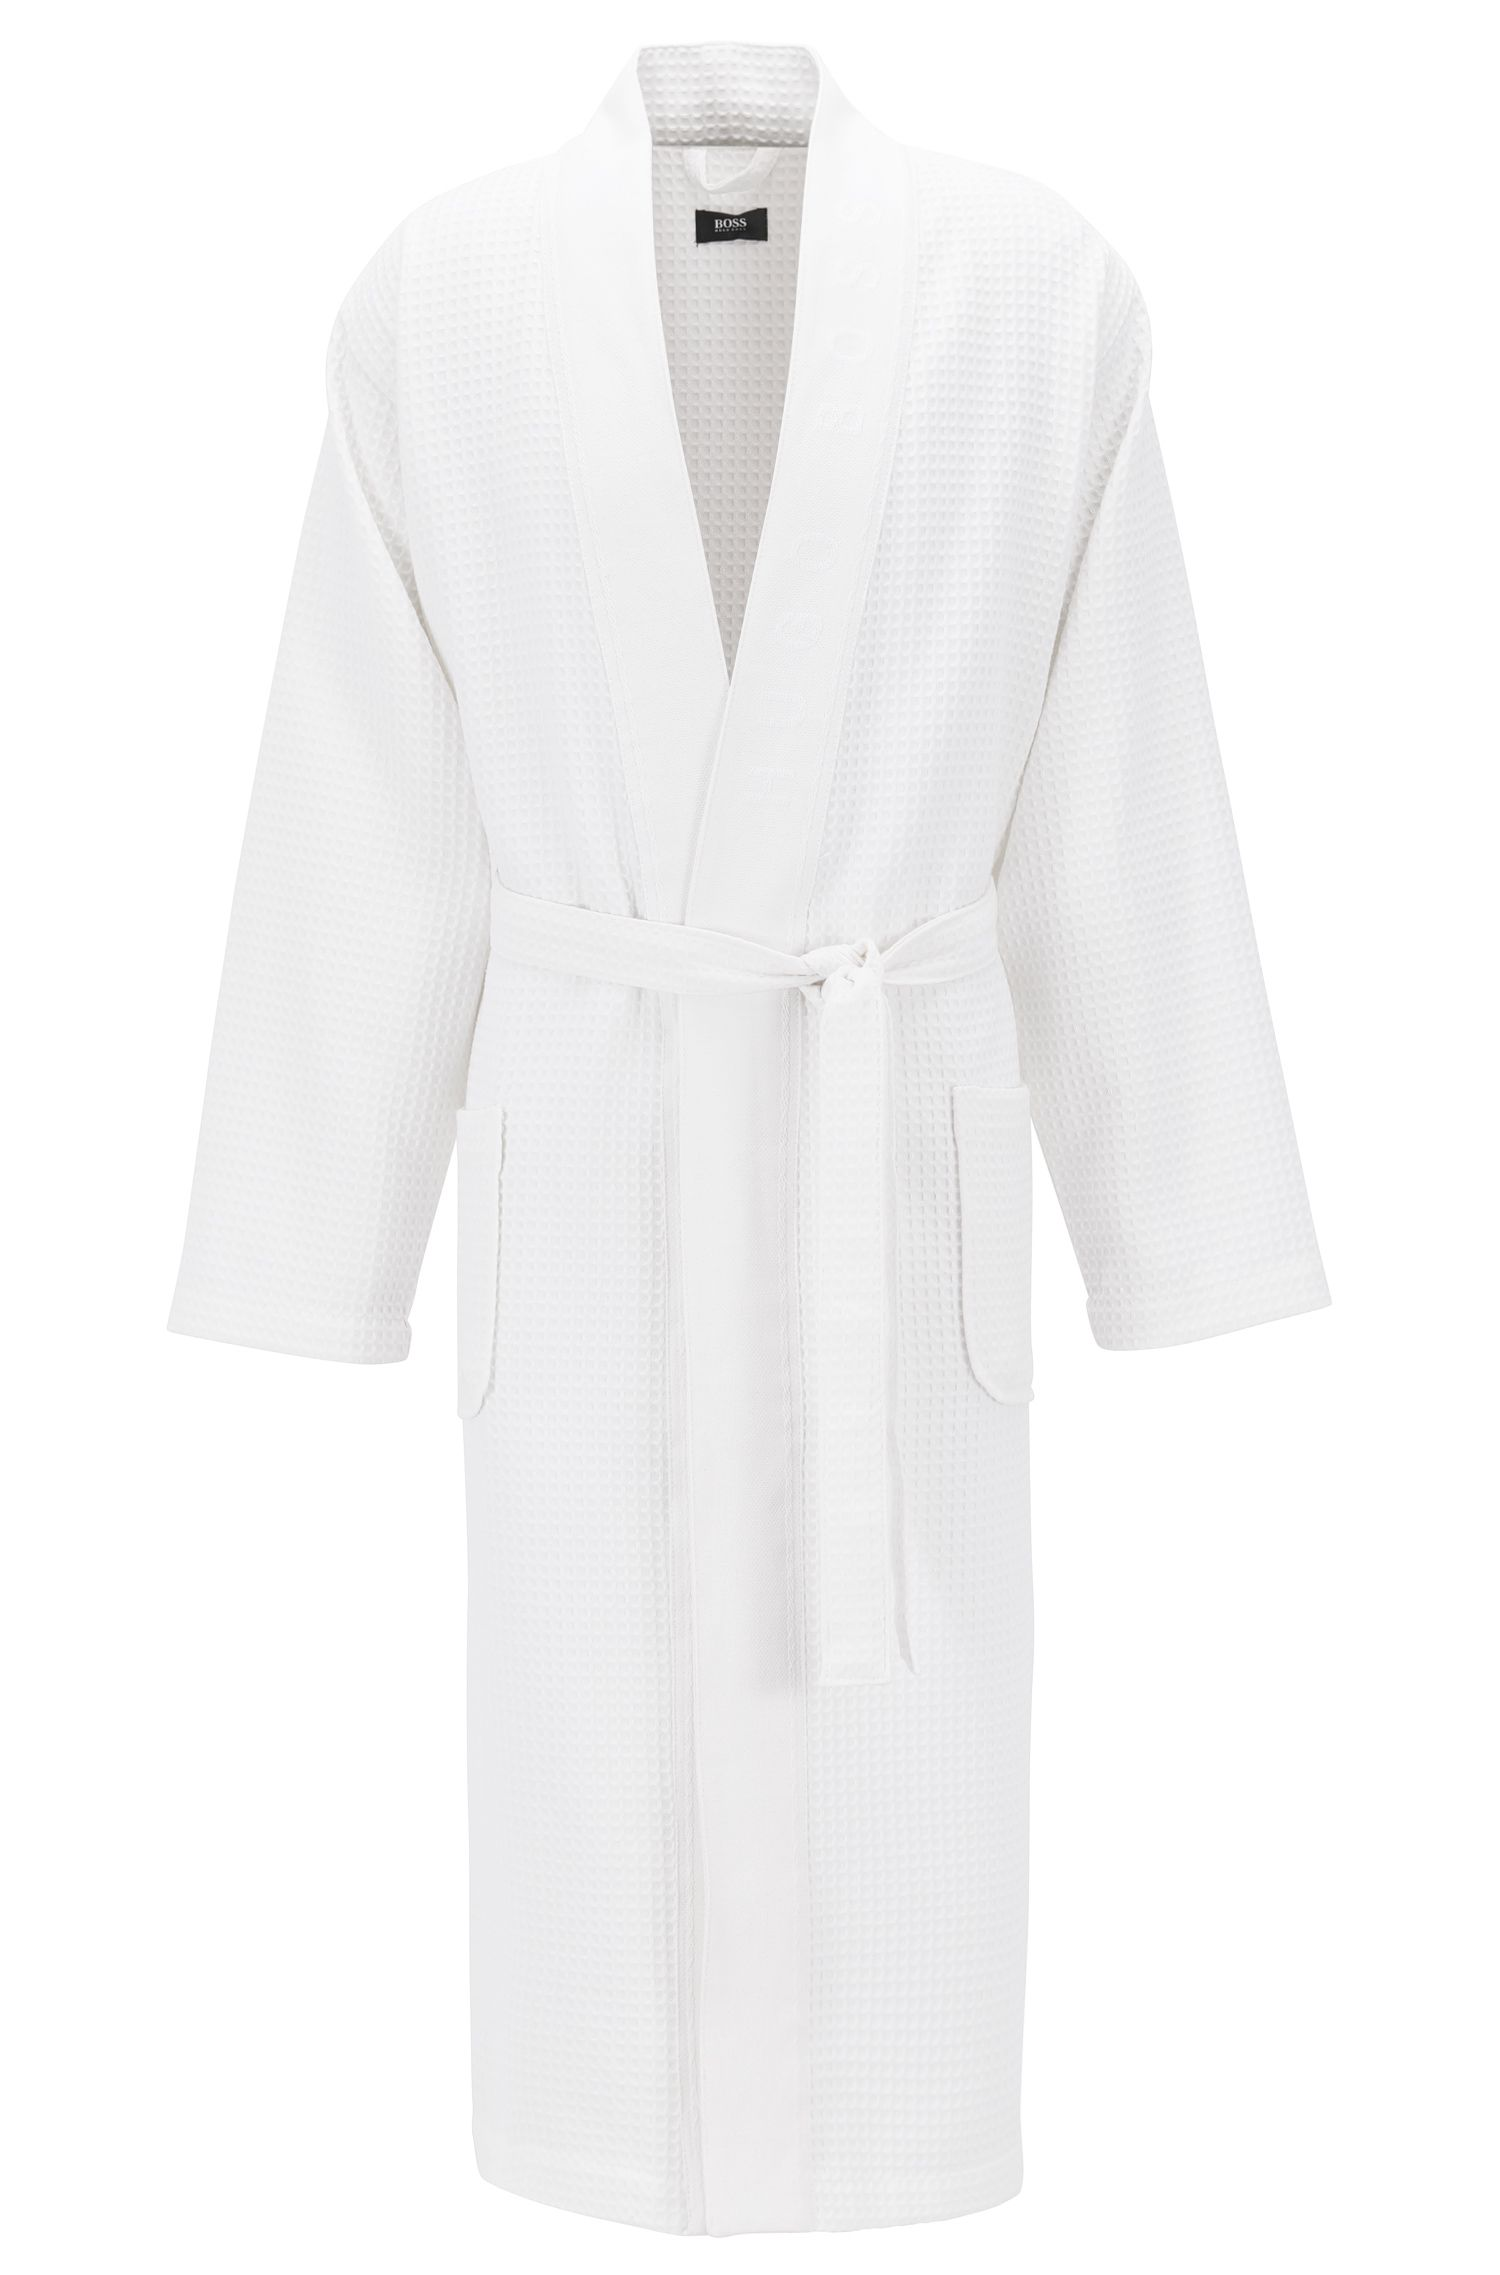 Dressing gown in cotton-blend waffle piqué